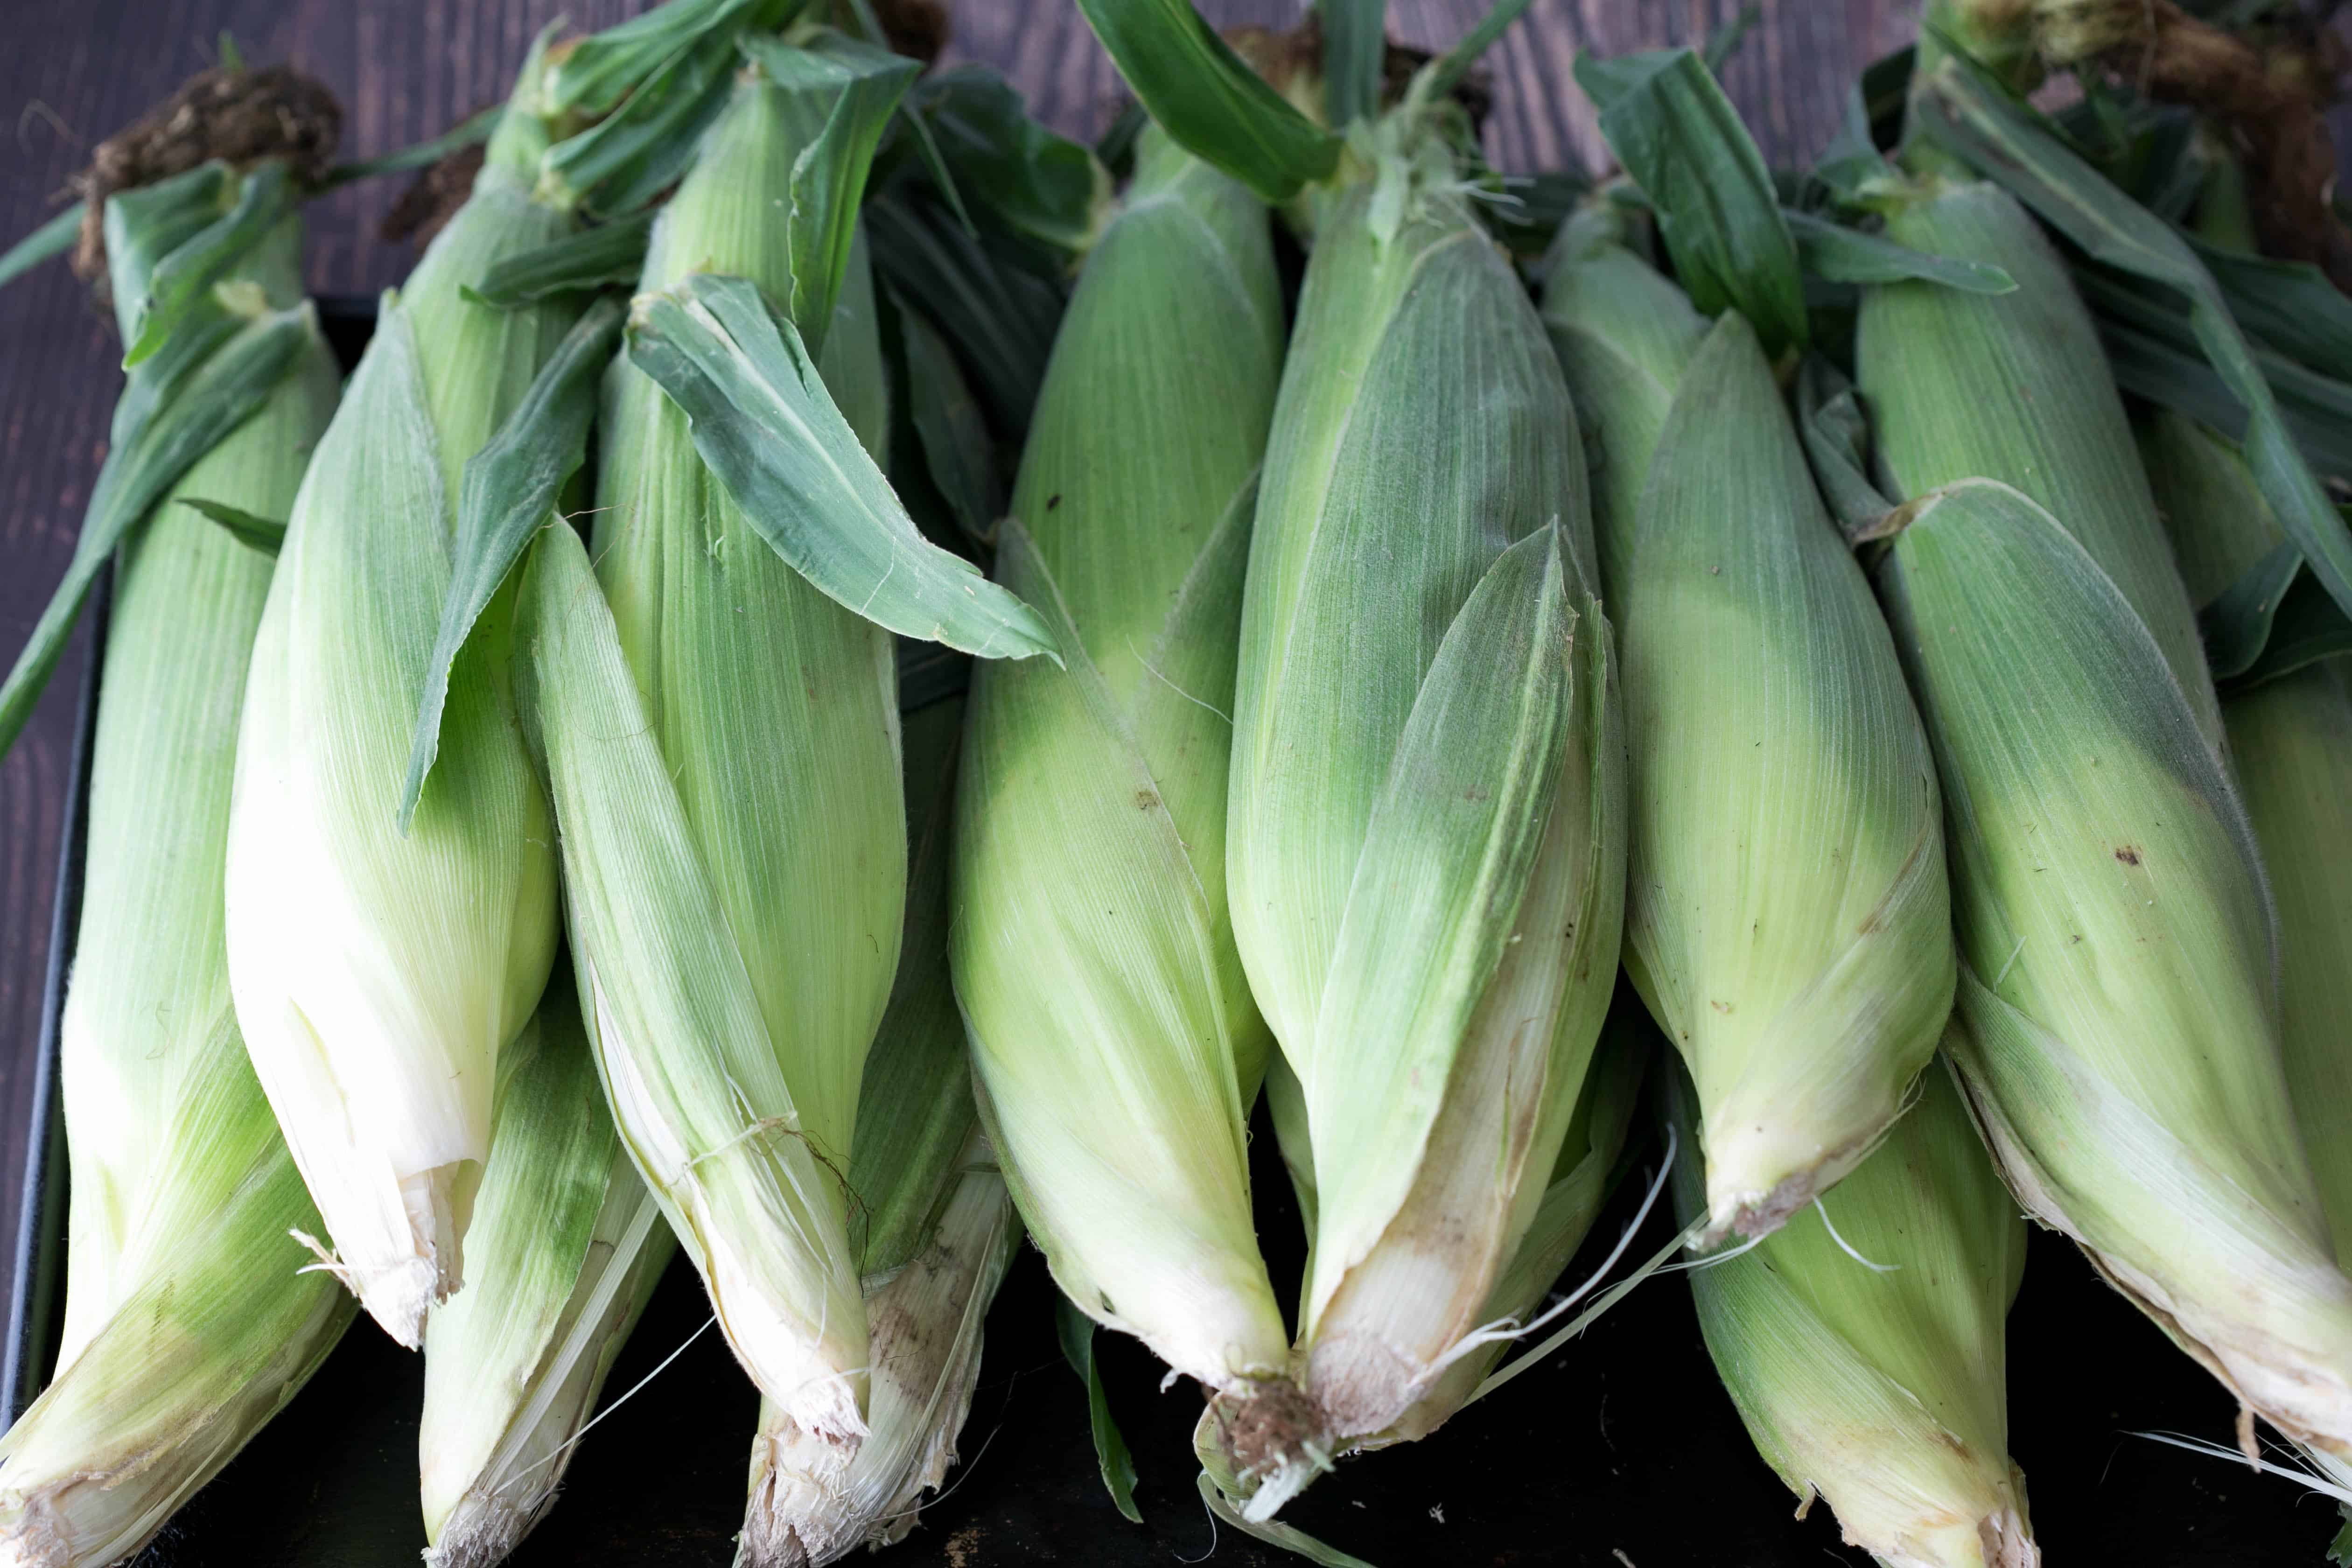 12 ears of fresh corn on the cob